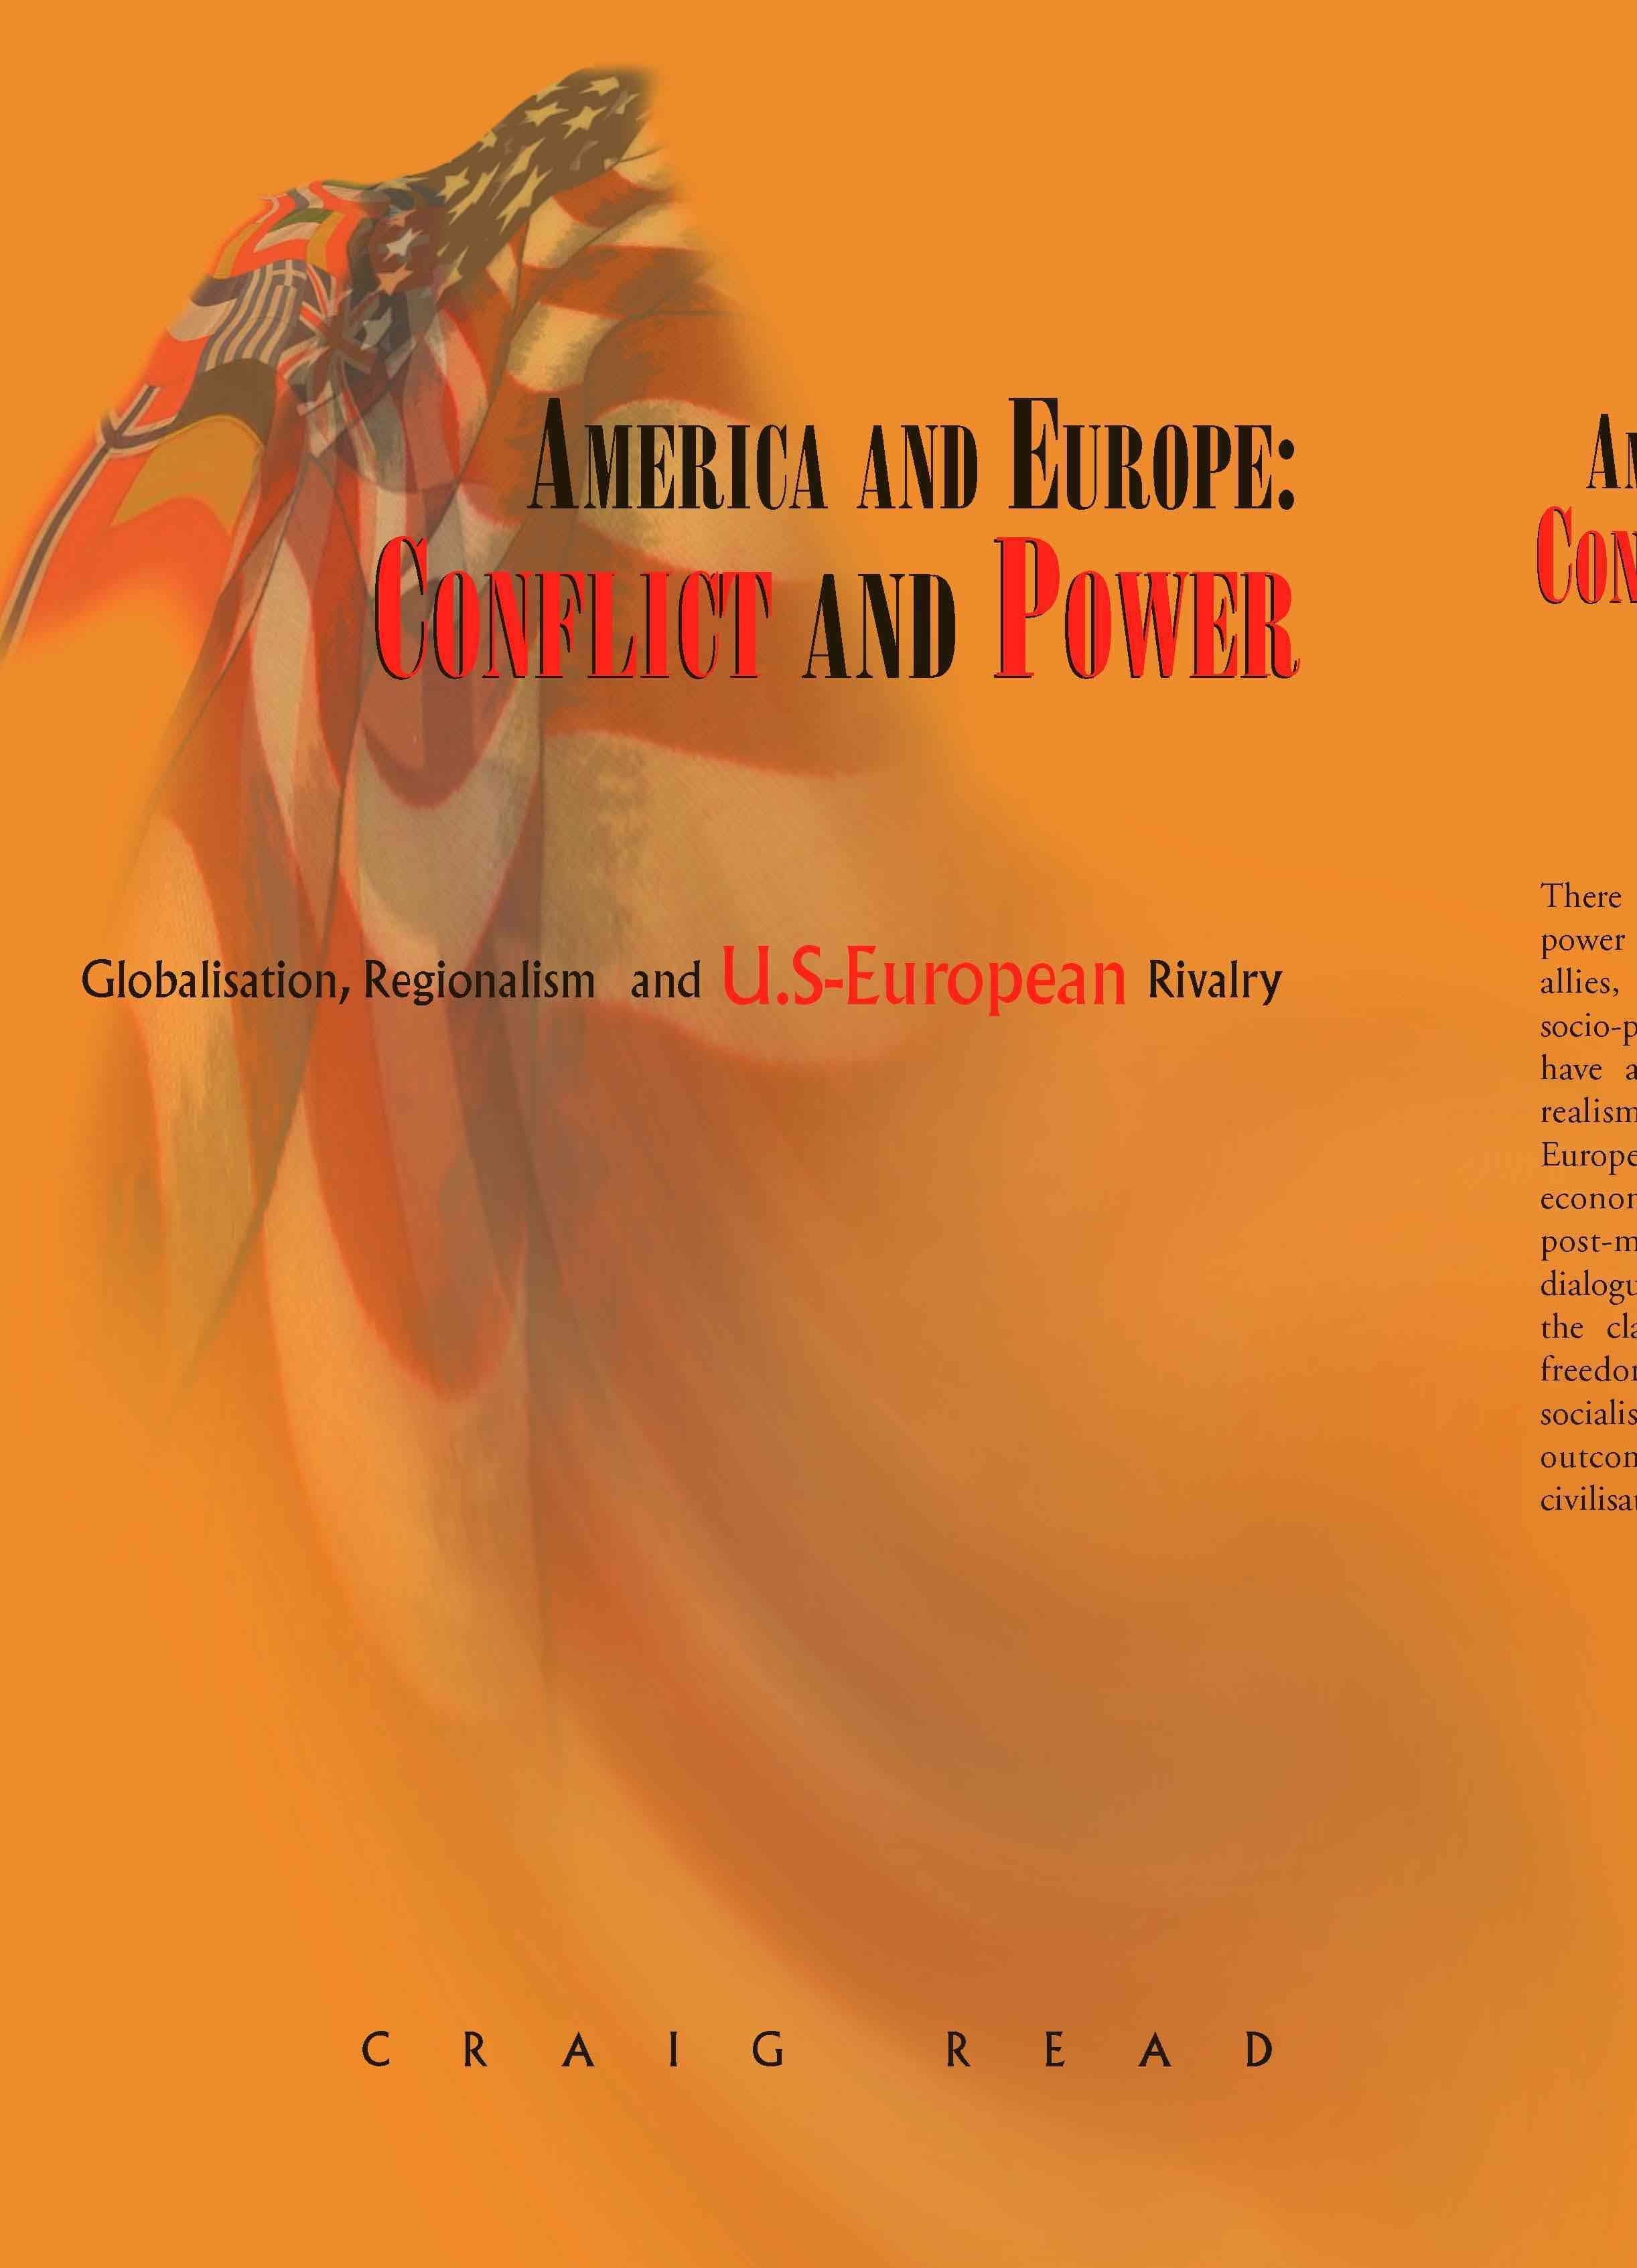 America And Europe: Conflict And Power By Read, Craig